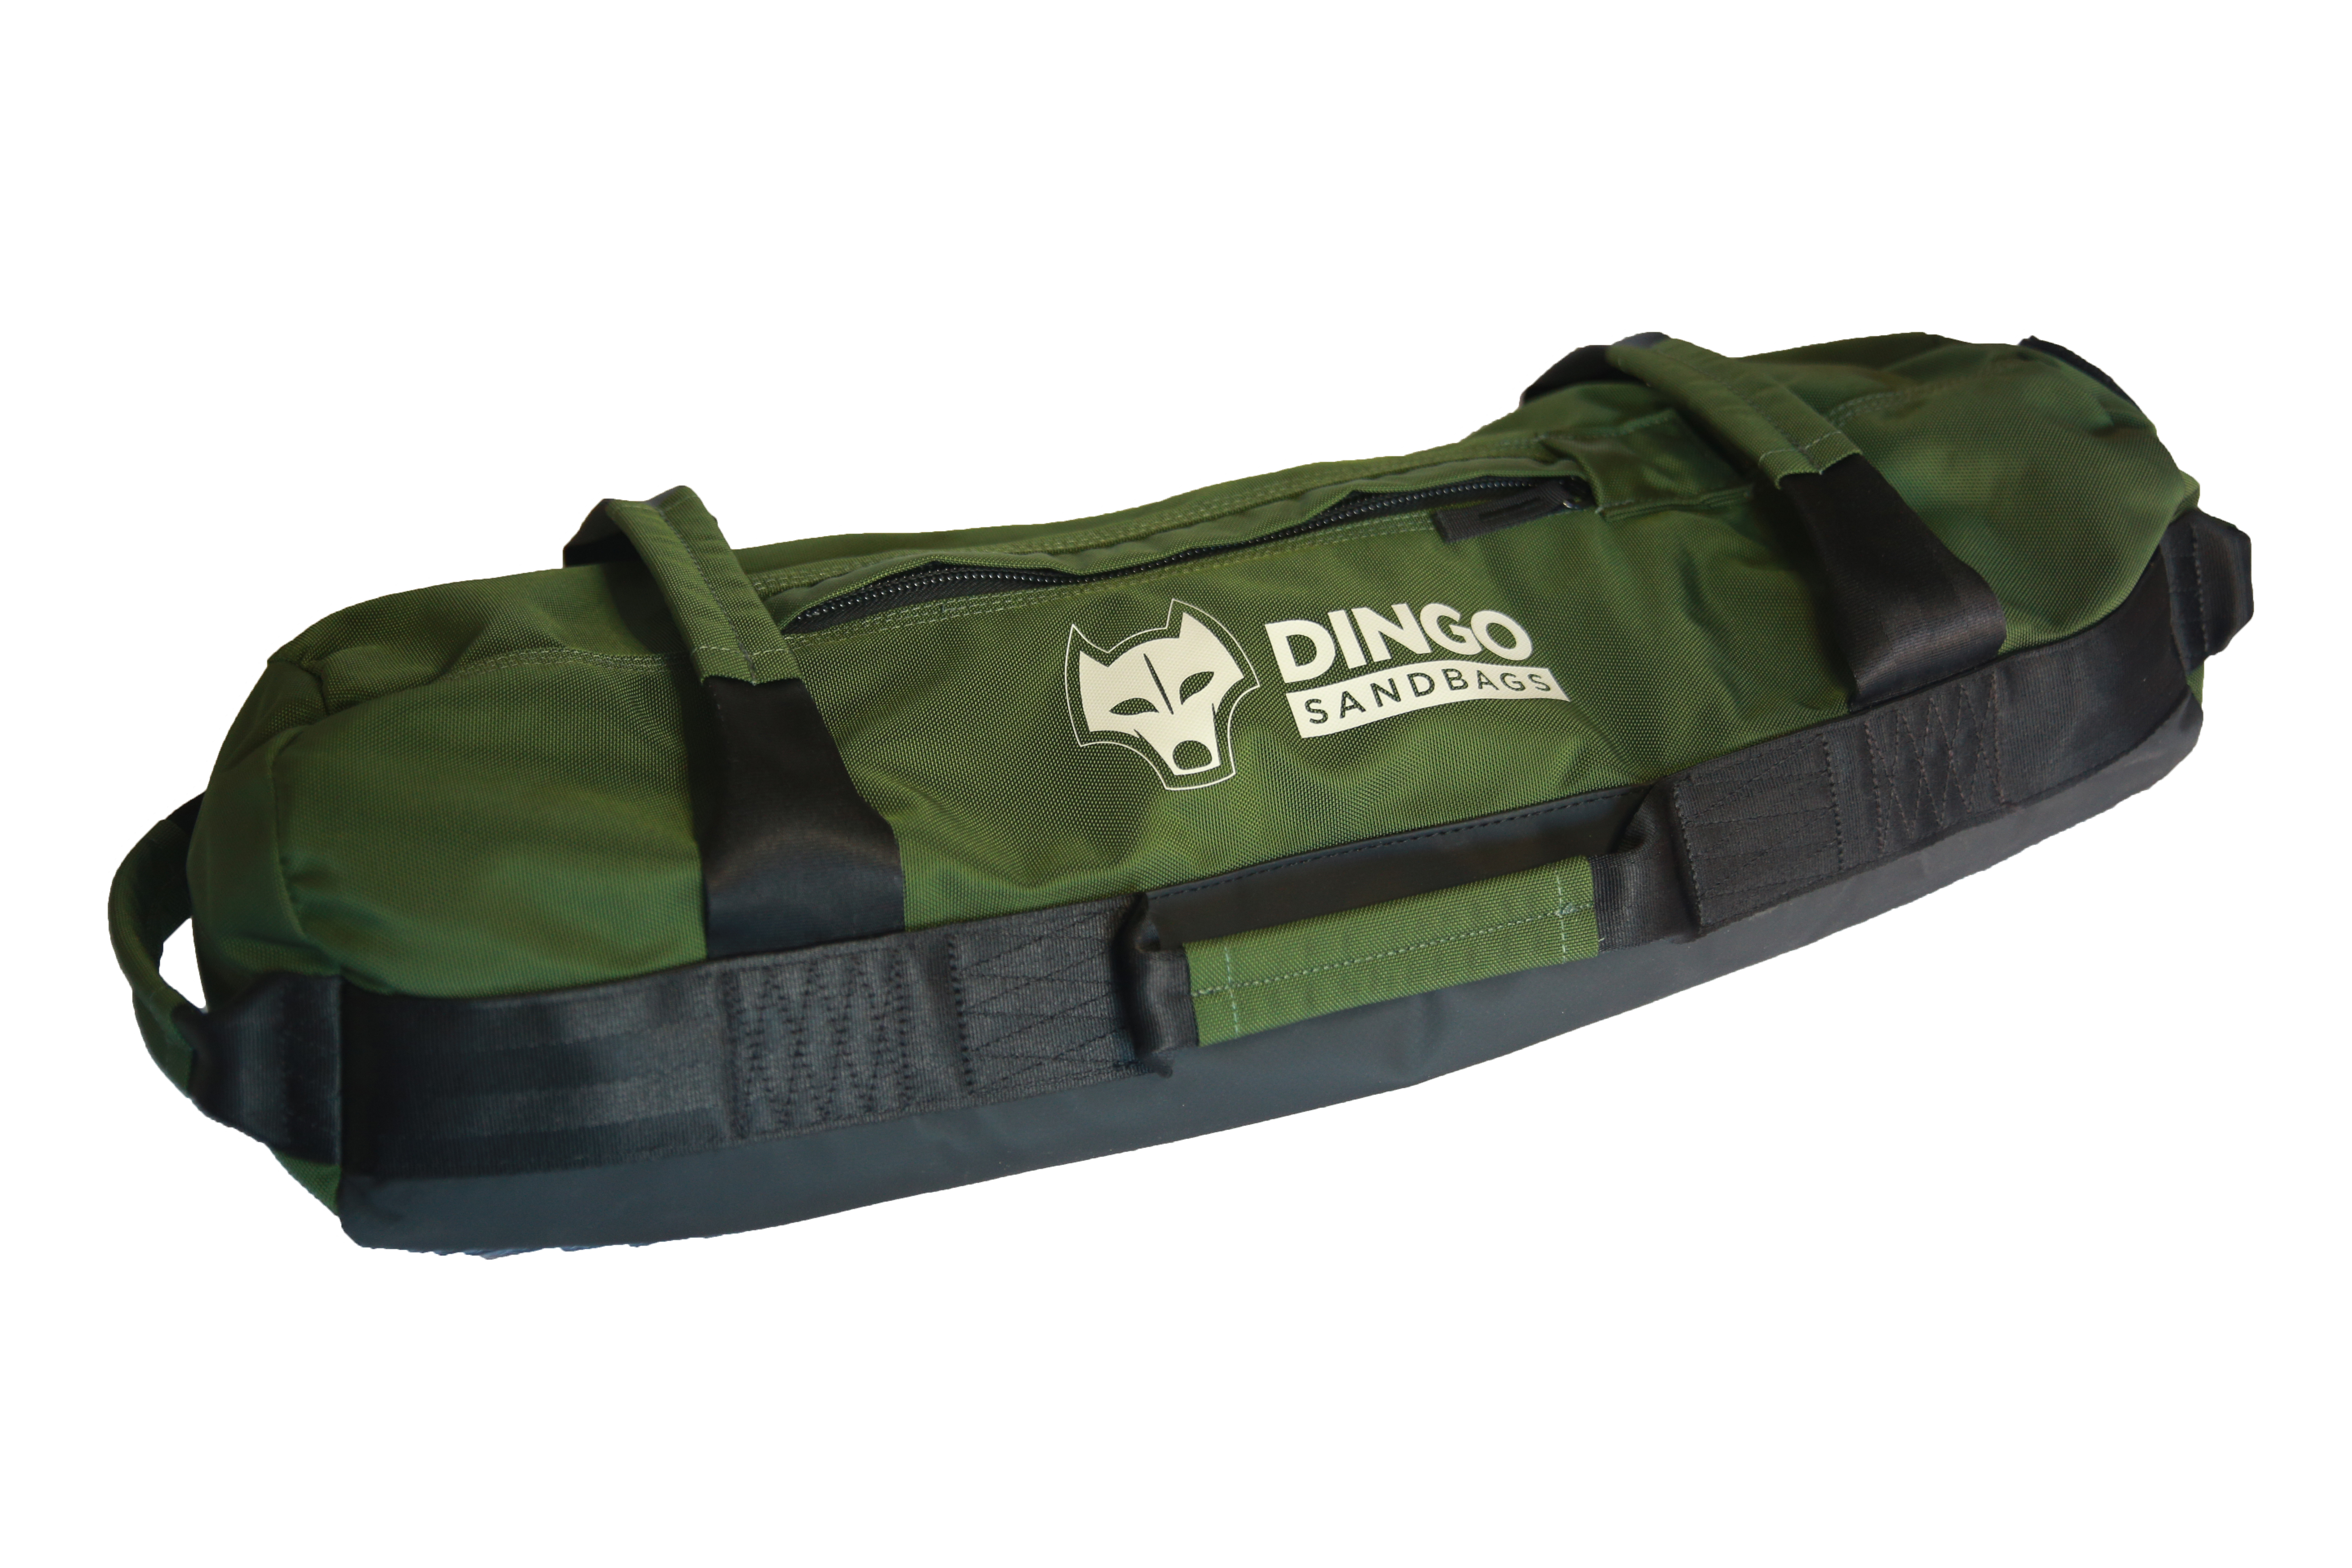 Medium Sandbag 15kg (with black tarpaulin base)